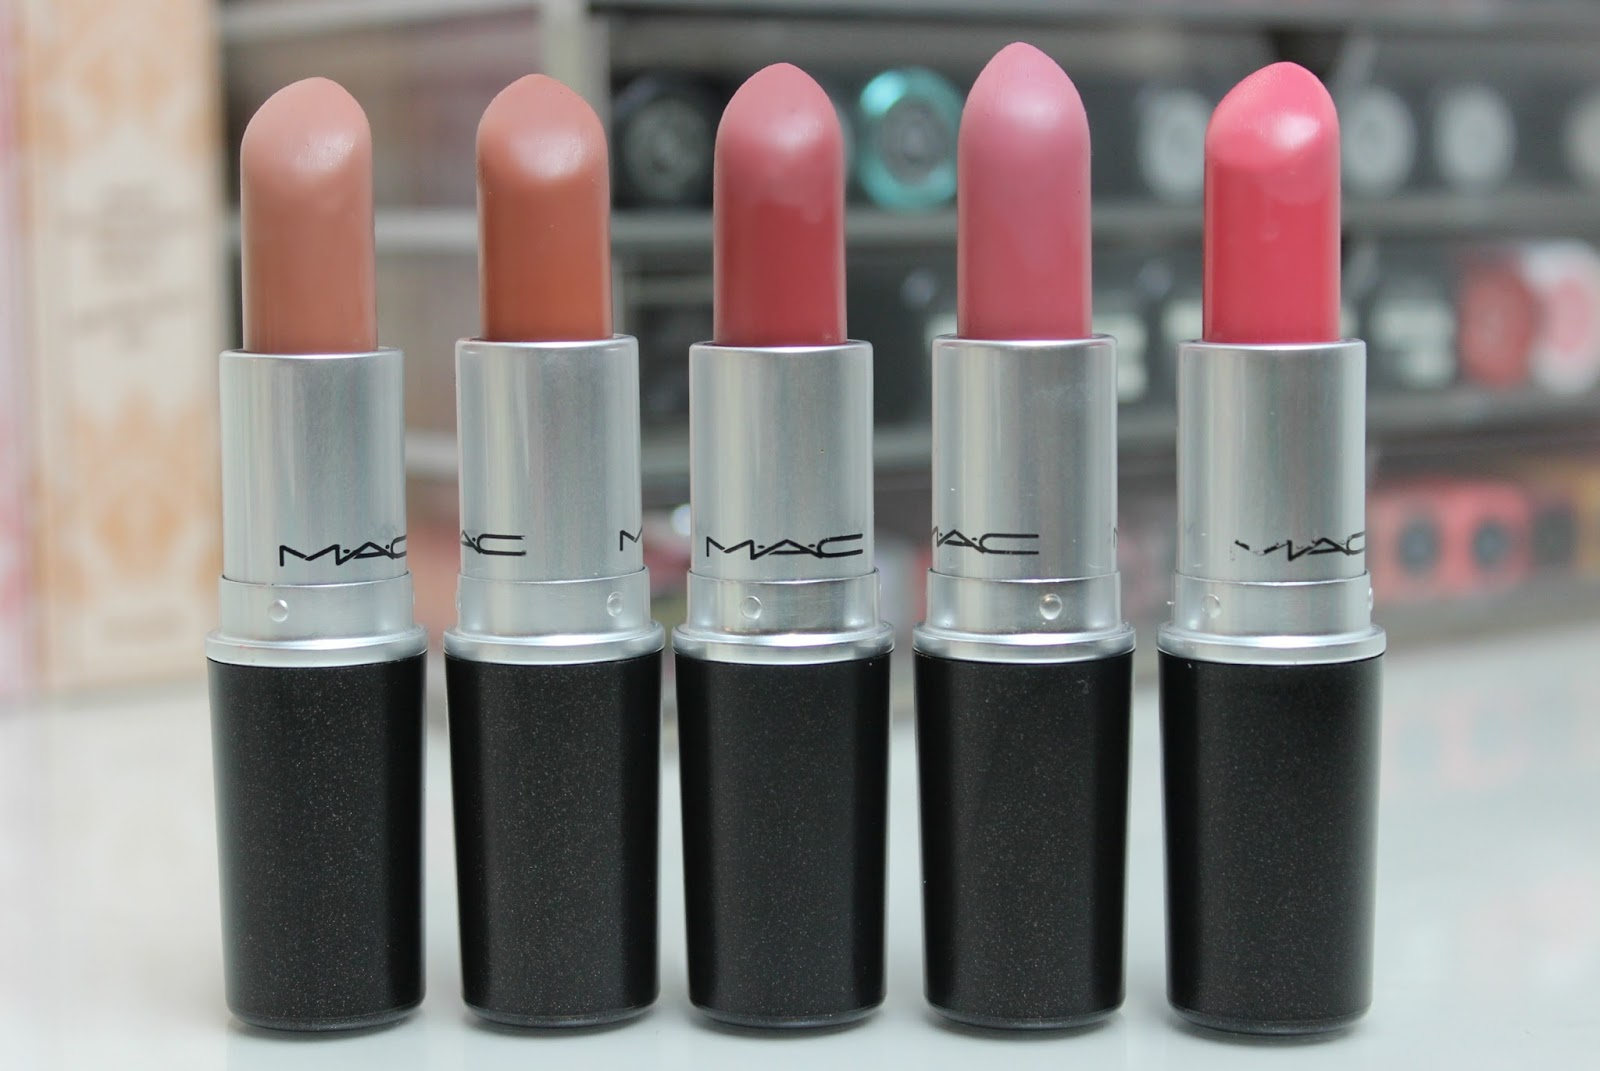 A picture of MAC lipsticks in shades Honey Love, Velvet Teddy, Mehr, Pink Plaid and Chatterbox